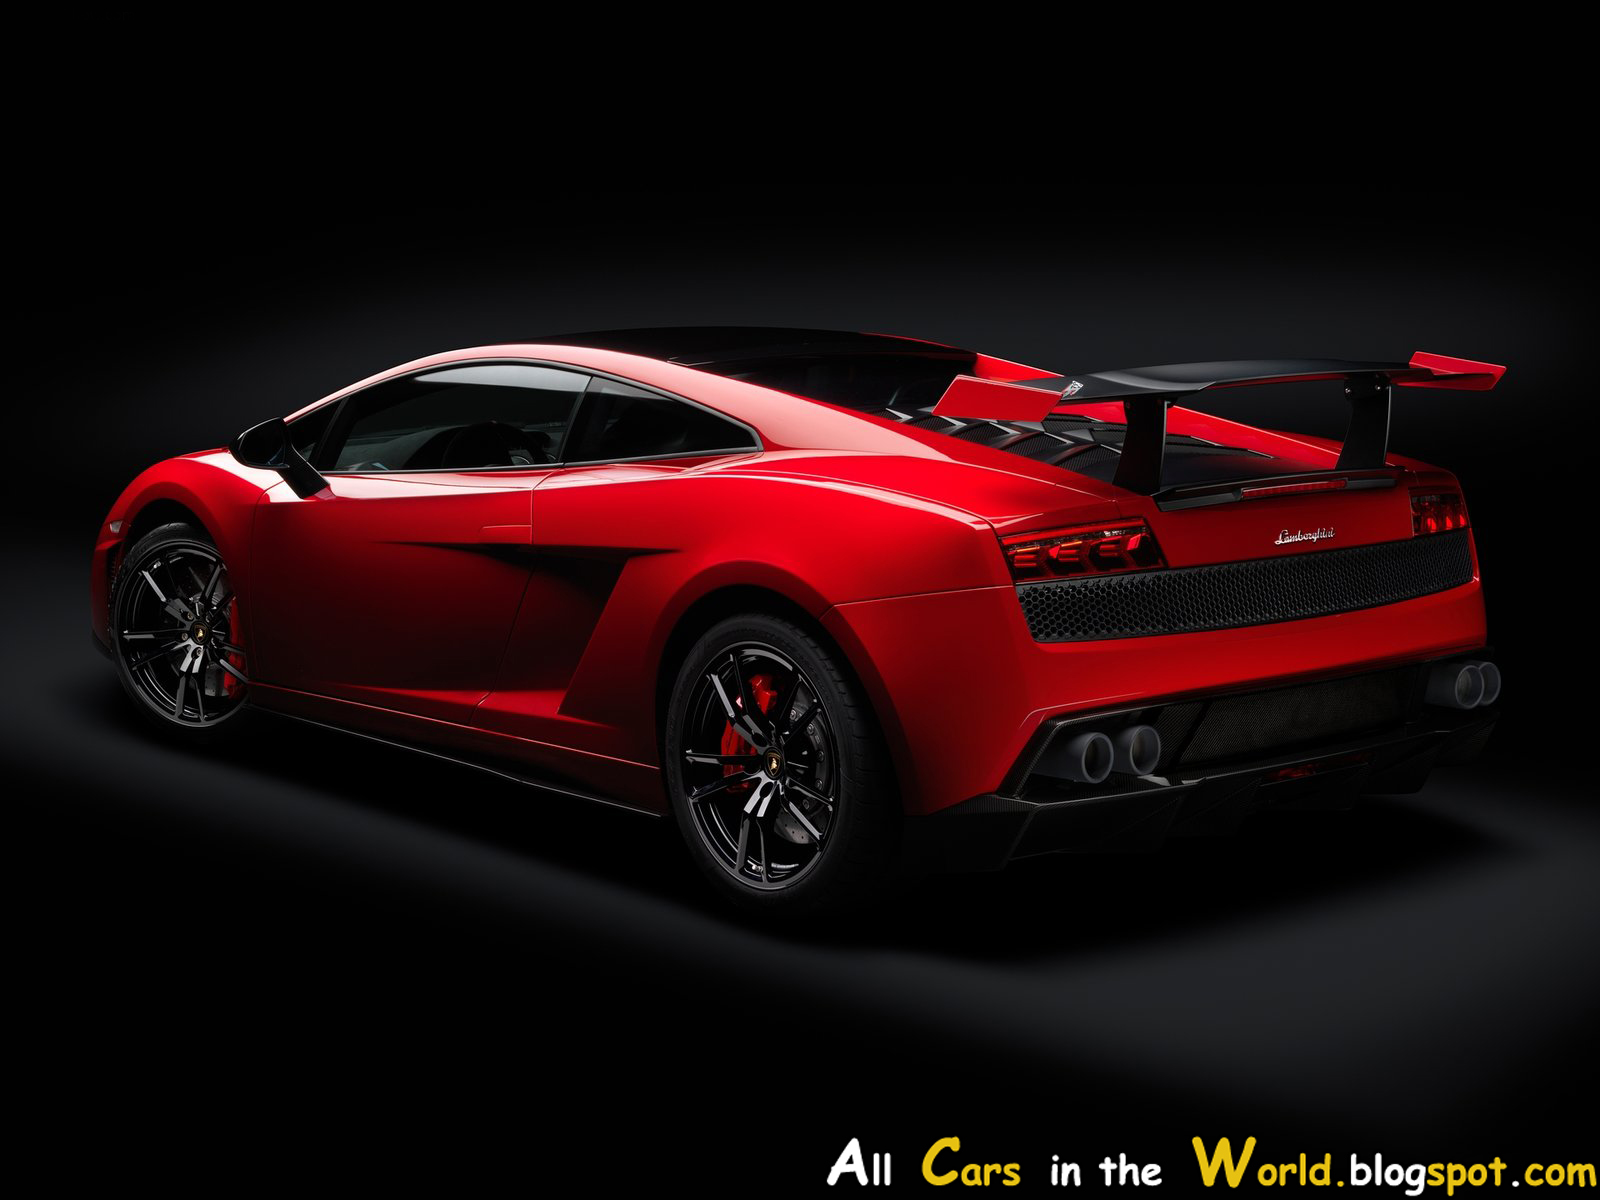 The 2012 Lamborghini Gallardo LP570-4 Super Trofeo Stradale ~ All